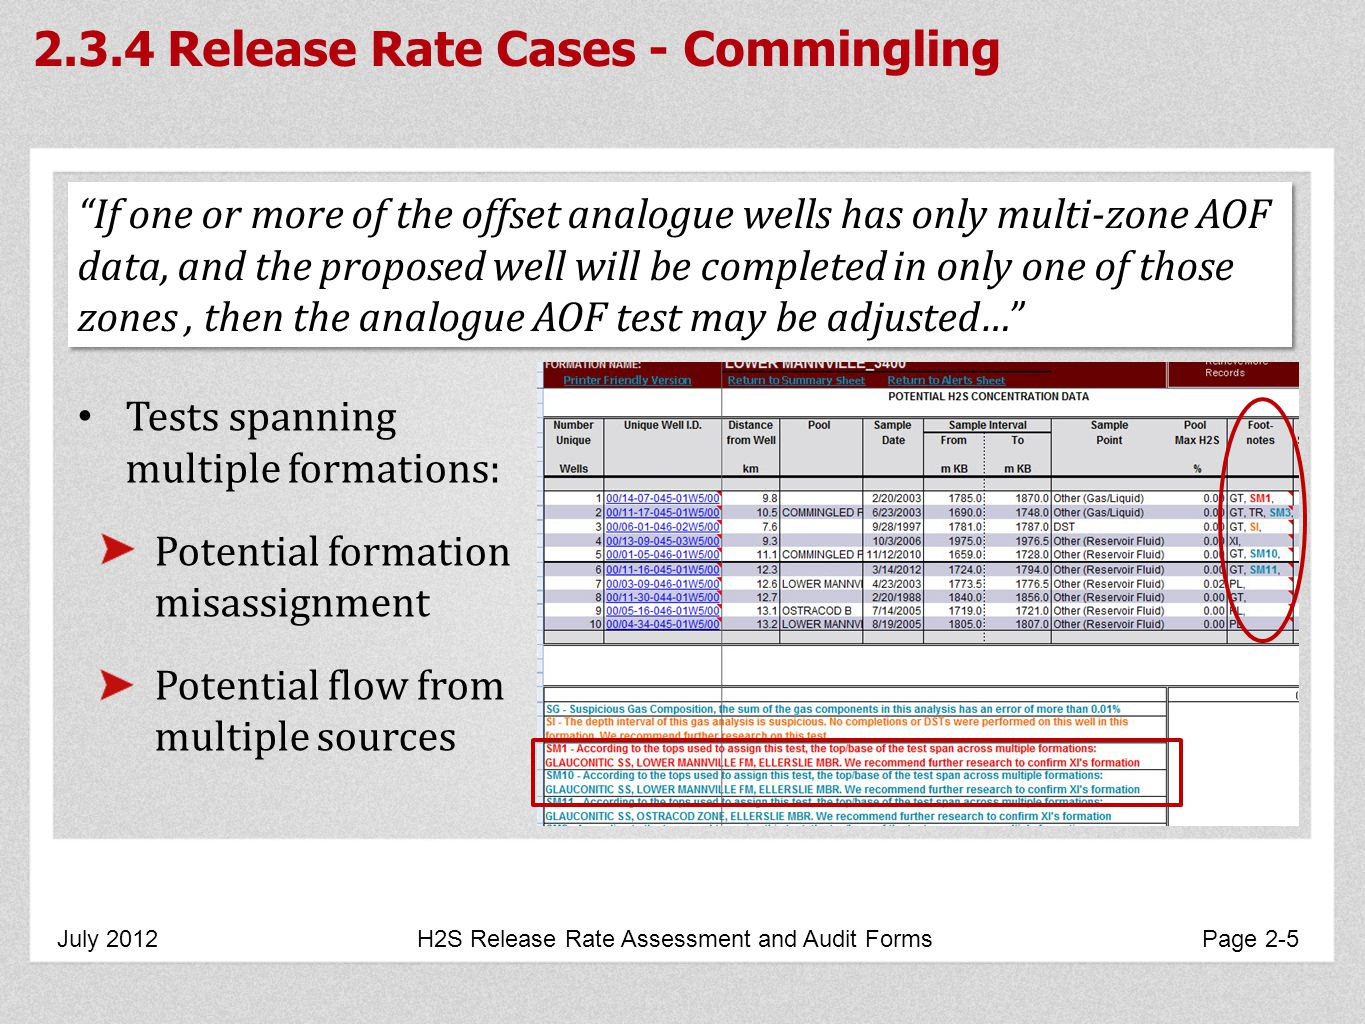 2.3.4 Release Rate Cases - Commingling July 2012 H2S Release Rate Assessment and Audit Forms Page 2-5 Tests spanning multiple formations: Potential formation misassignment Potential flow from multiple sources If one or more of the offset analogue wells has only multi-zone AOF data, and the proposed well will be completed in only one of those zones, then the analogue AOF test may be adjusted…